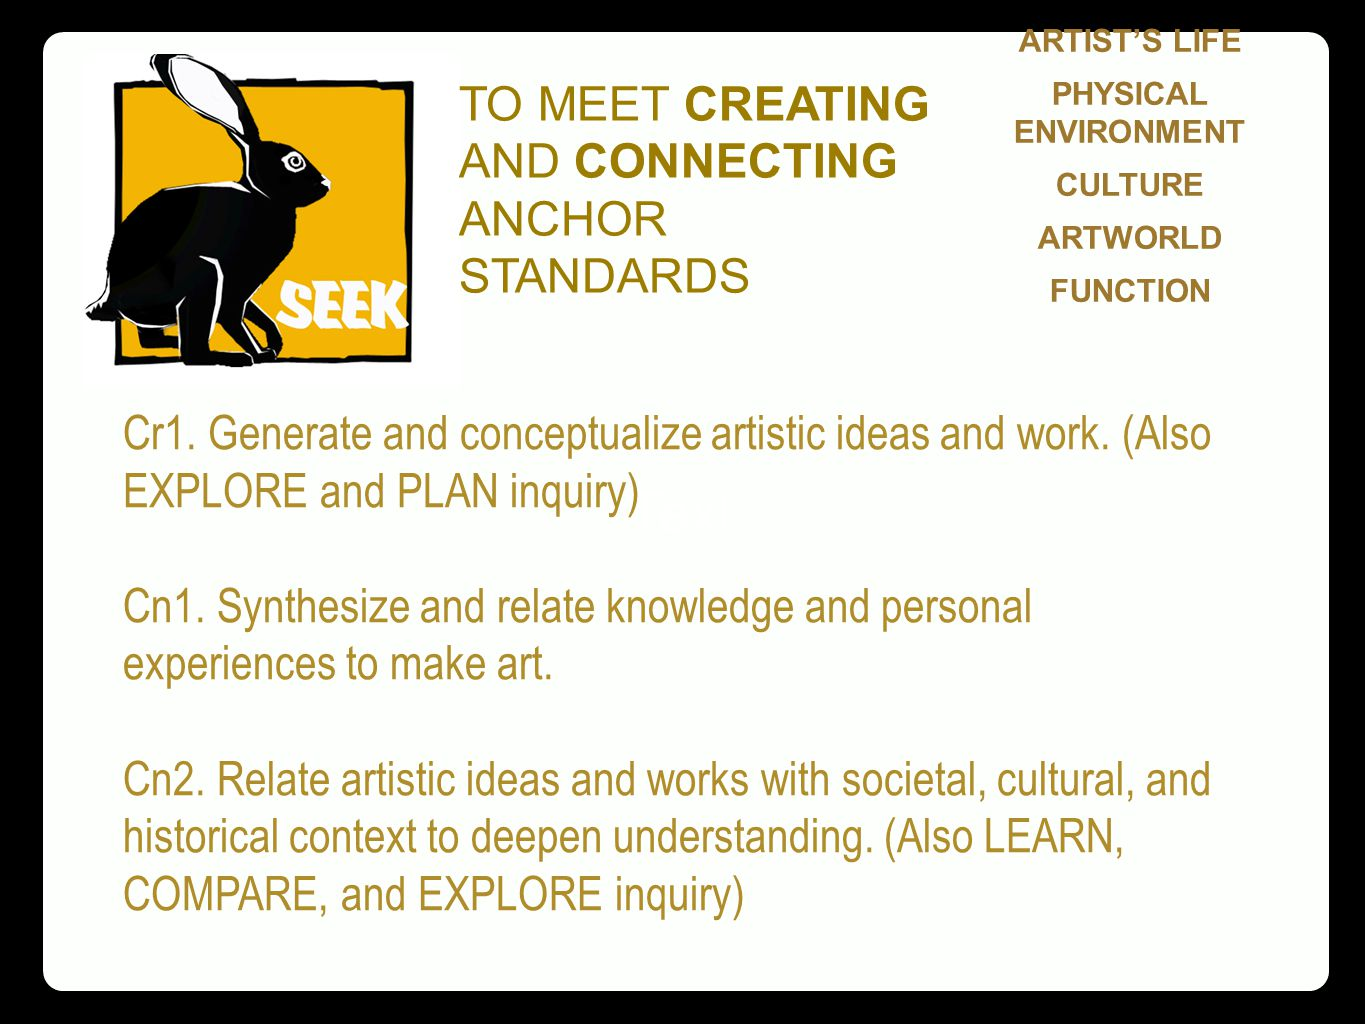 Text ARTIST'S LIFE PHYSICAL ENVIRONMENT CULTURE ARTWORLD FUNCTION TO MEET CREATING AND CONNECTING ANCHOR STANDARDS Cr1.